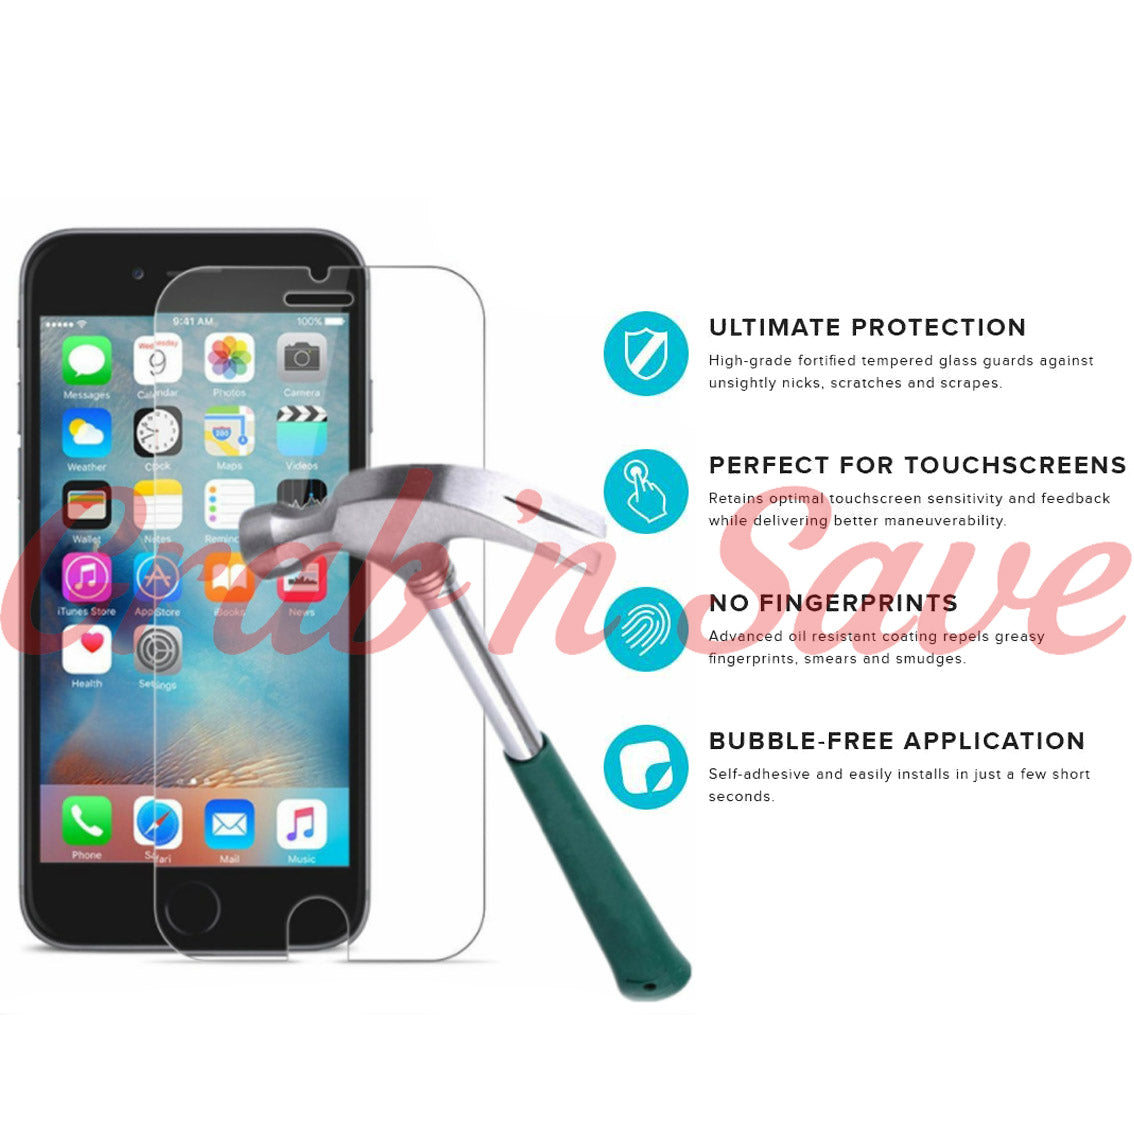 iPhone 7 Plus Screen Protector, Glass Screen Protector, Tempered Glass Screen Protector